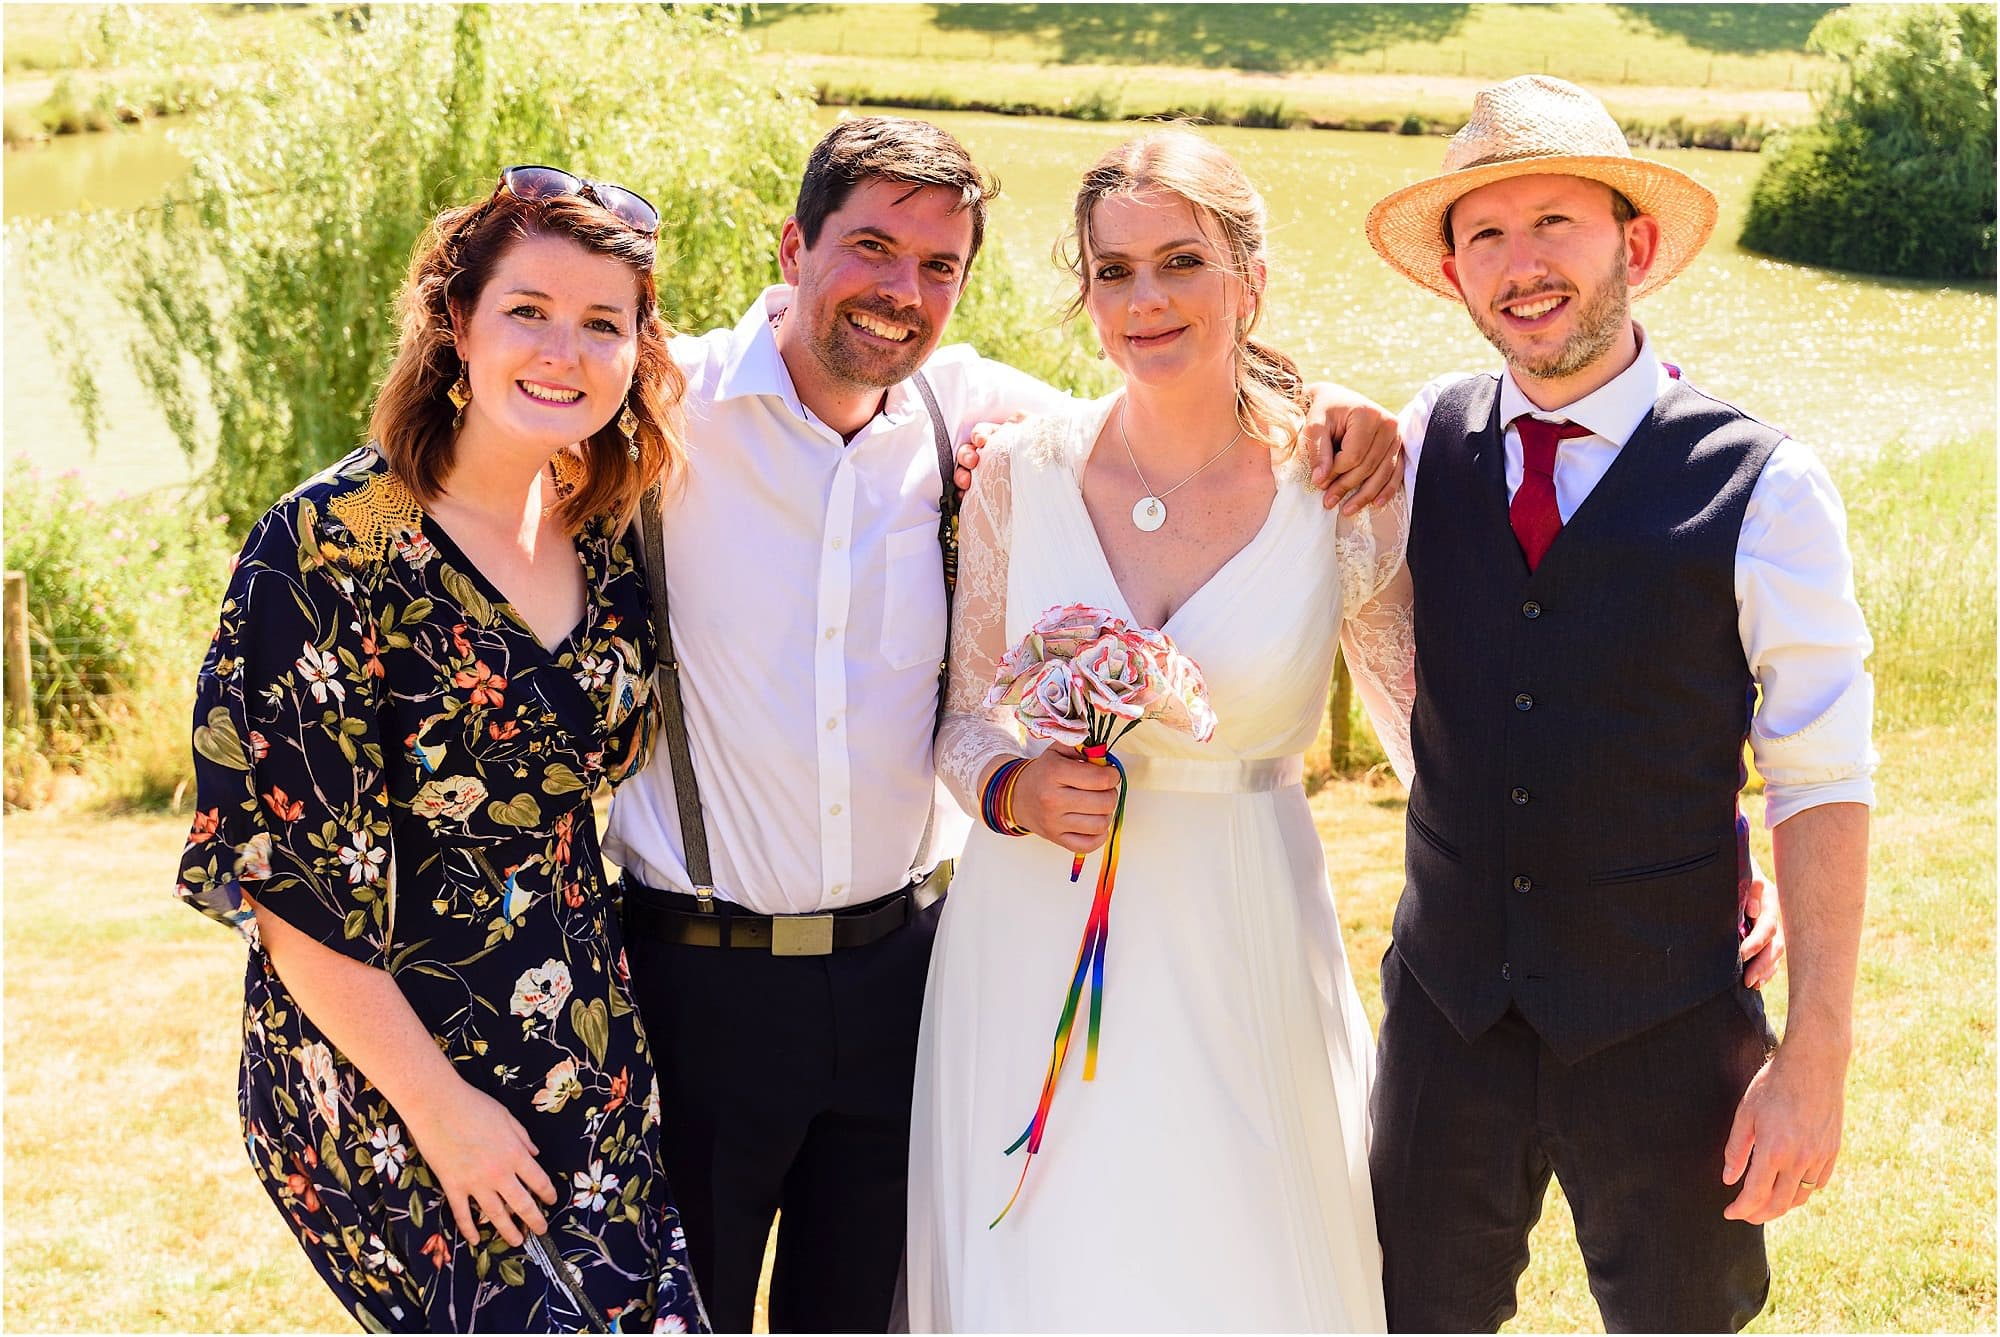 wedding photographer with bride, groom and wife